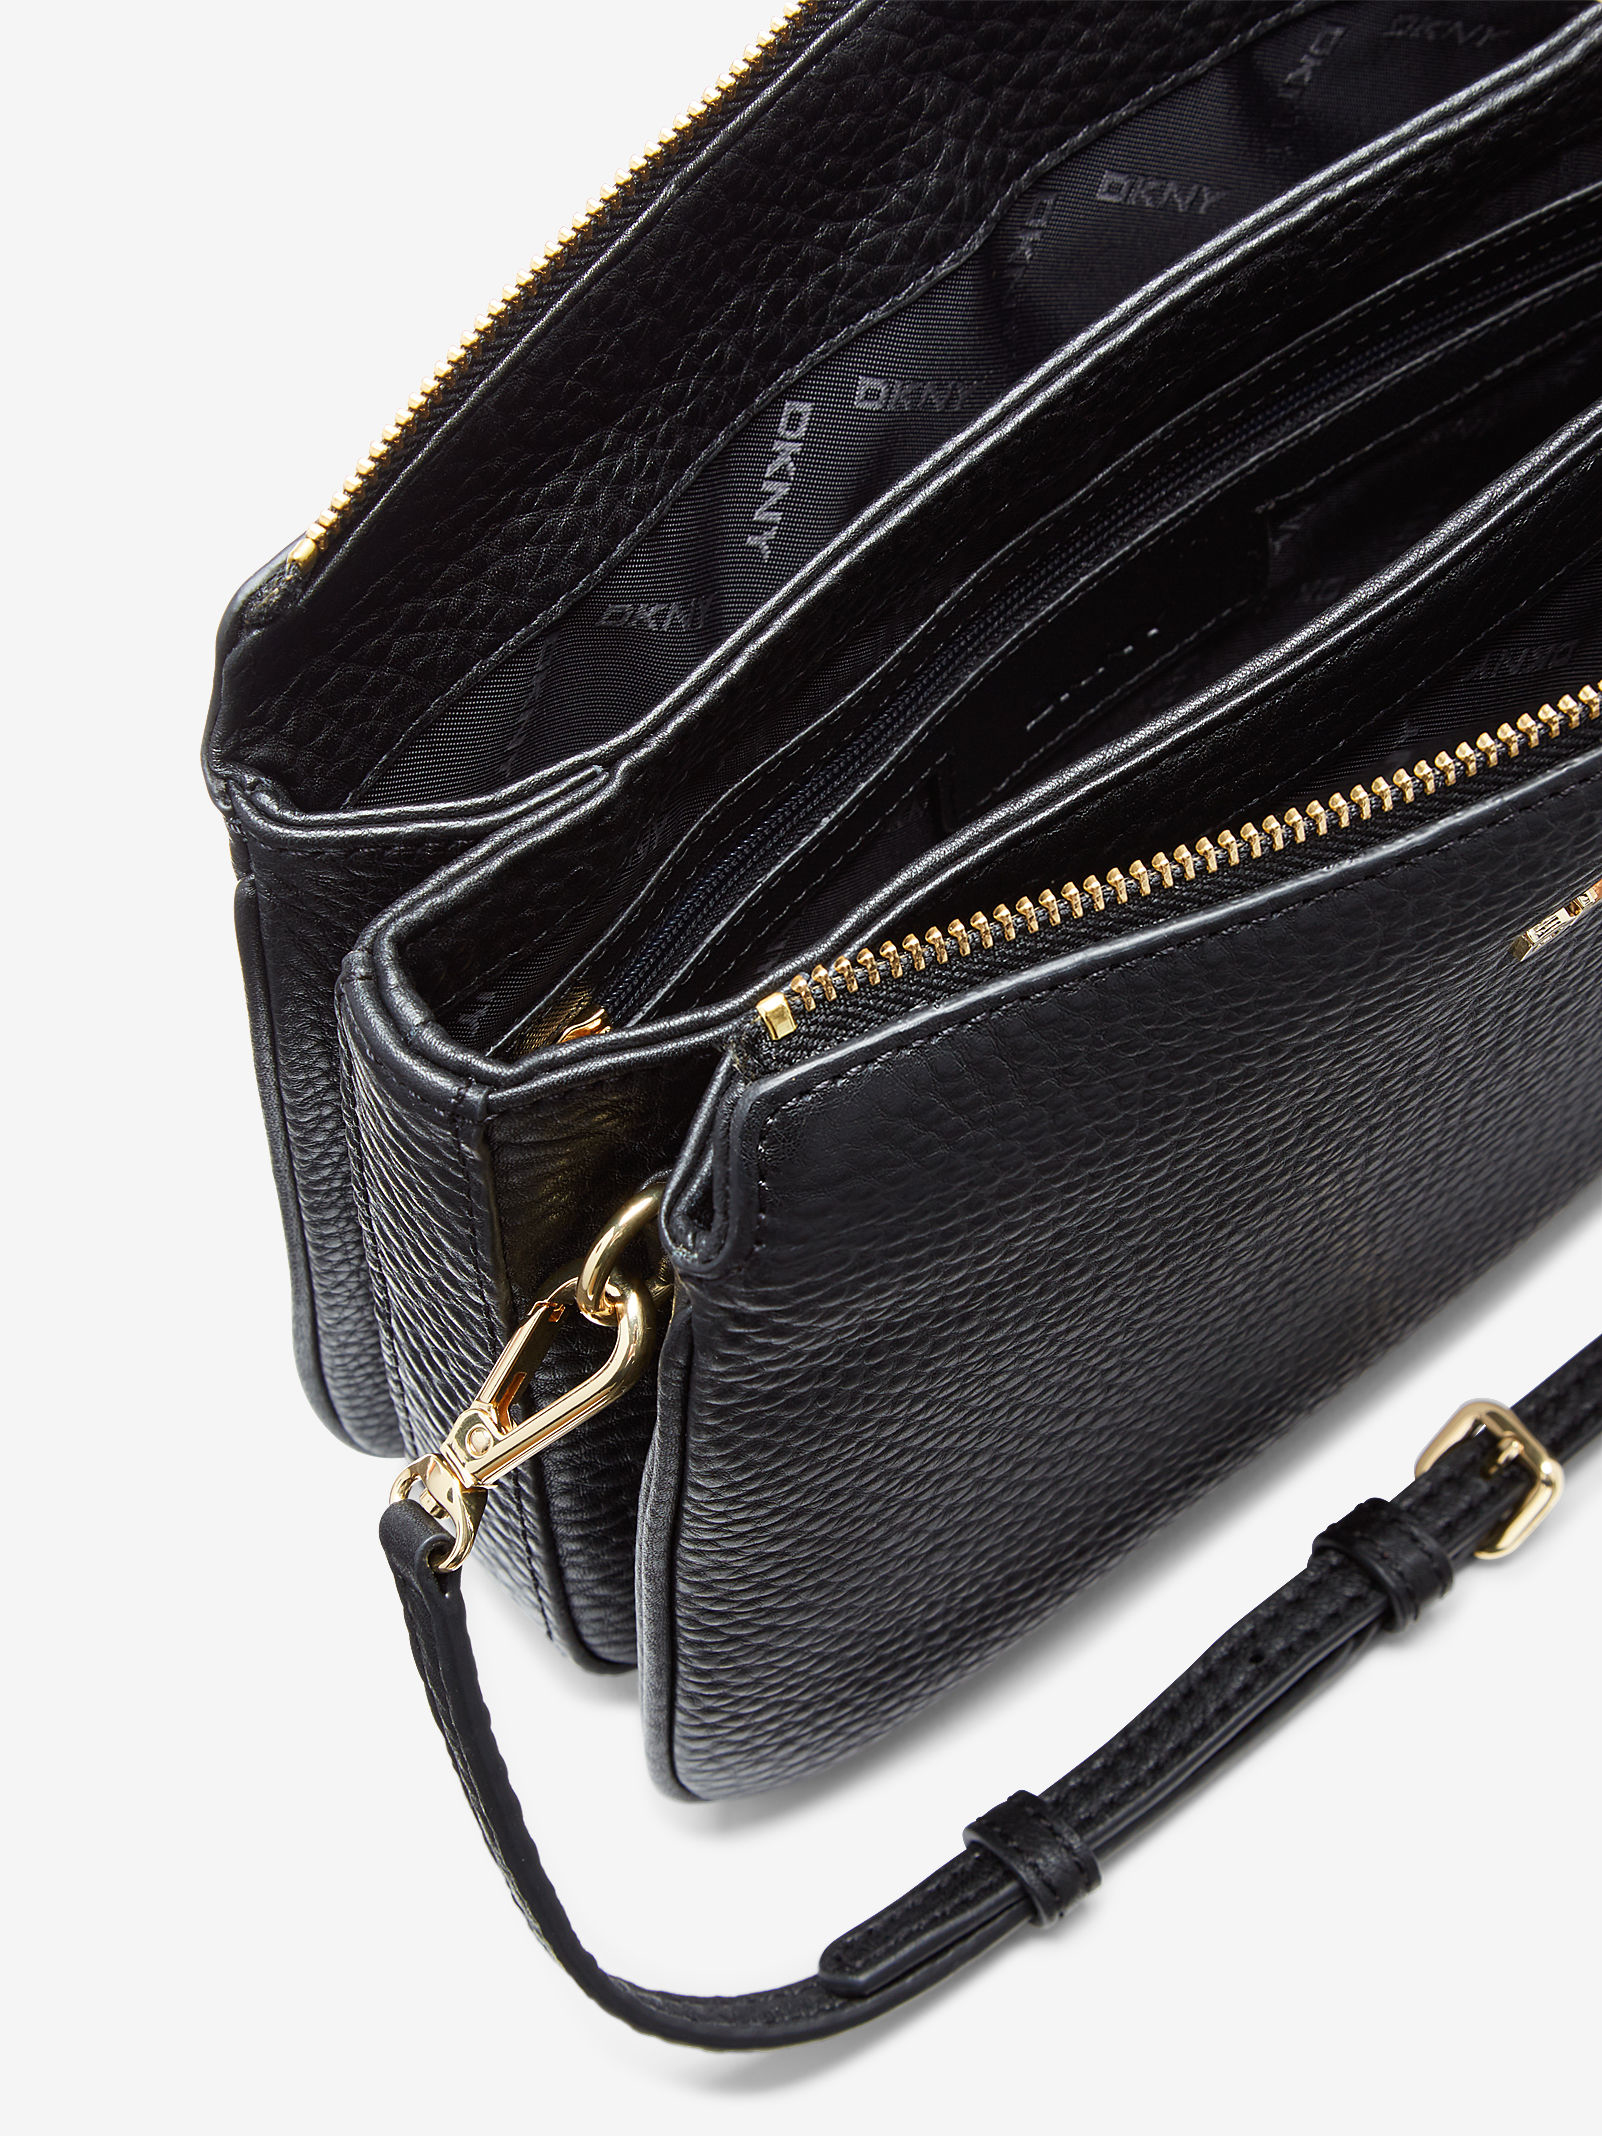 Lyst - DKNY Tumbled Leather Triple Compartment Crossbody in Black